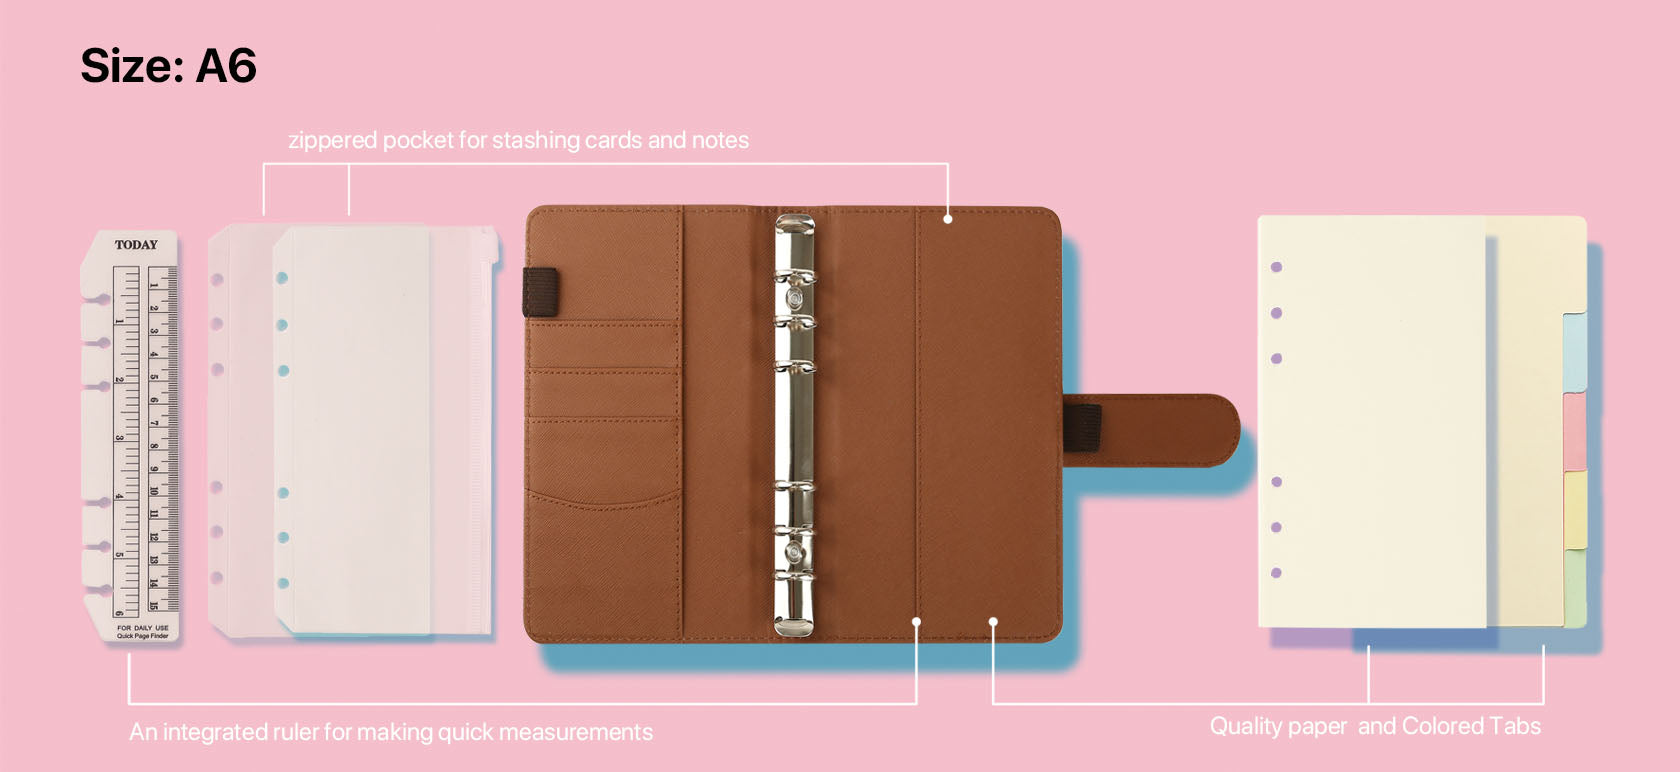 size a6 personal organizers filofax style specification - 180 plain pages of quality paper - Tabbed pages with different colored tabs to keep your notes clearly sectioned - Multiple card slots plus a transparent photo slot - A zippered pocket for stashing cards and notes - 1 large pocket on the back for storing loose papers and receipts - An integrated ruler for making quick measurements - 2 pen loops to keep your favorite writing tools handy - Sturdy binding with ring clasps to hold all pages neatly together - Front tab closure to keep your organizer fastened shut